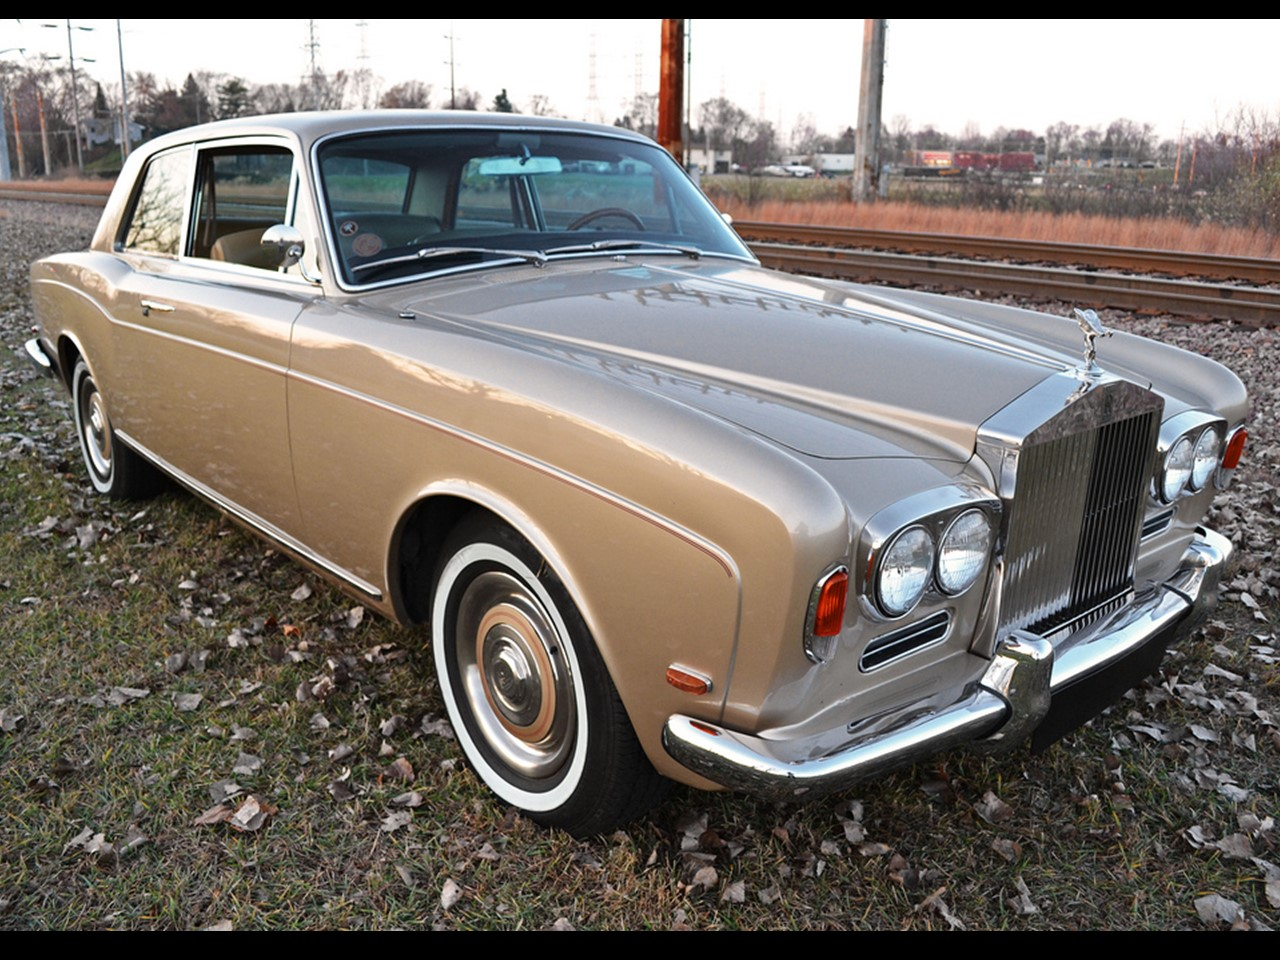 1969 rolls royce silver shadow mpw fixedhead coupe notoriousluxury. Black Bedroom Furniture Sets. Home Design Ideas